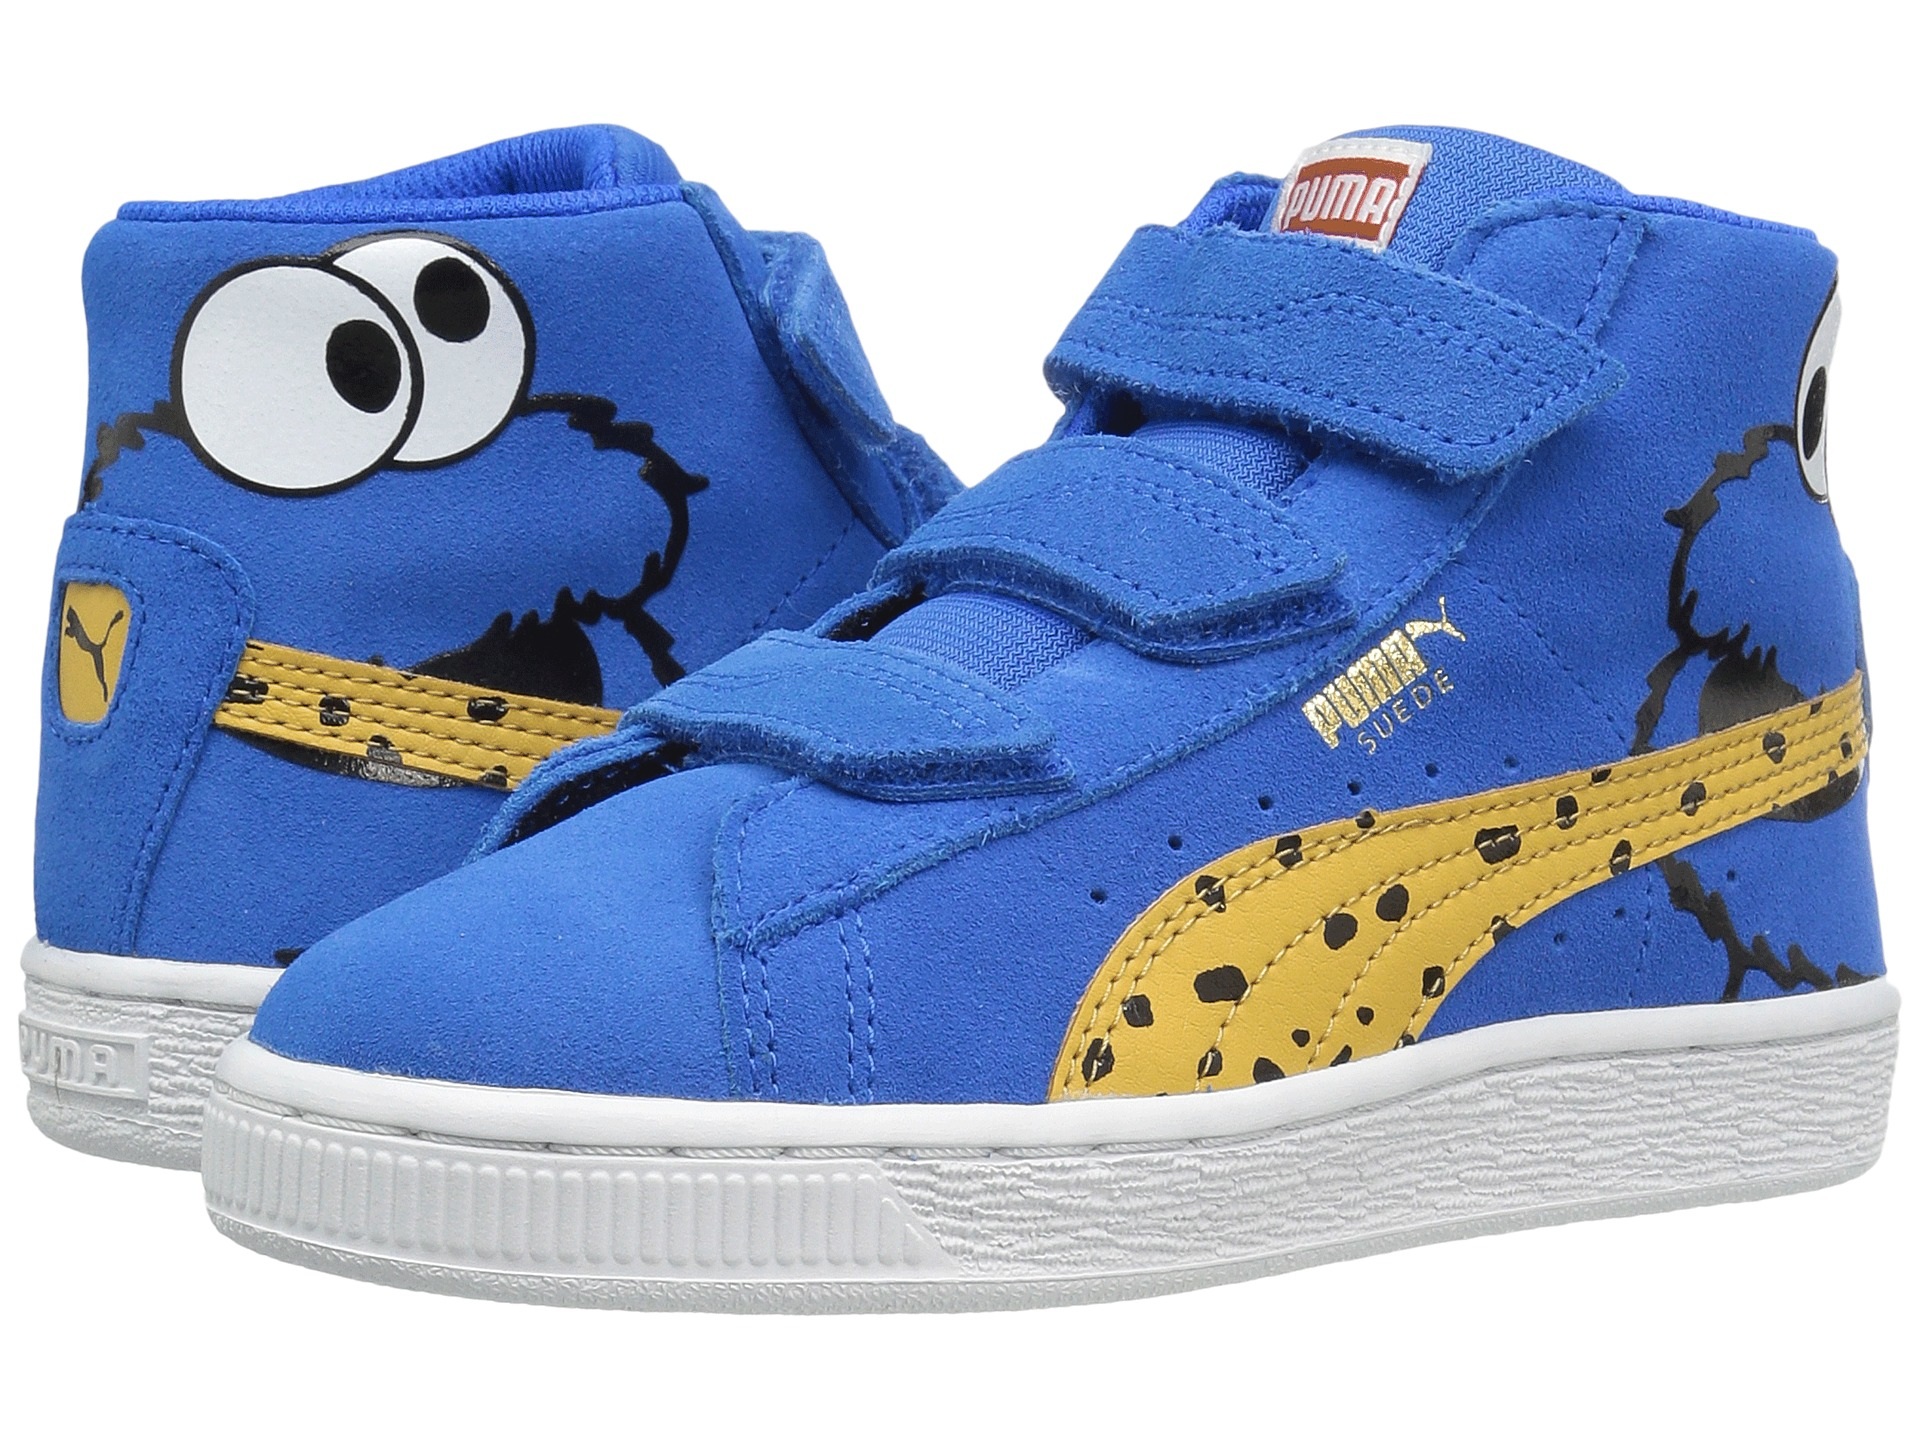 Kids Cookie Monster Shoes